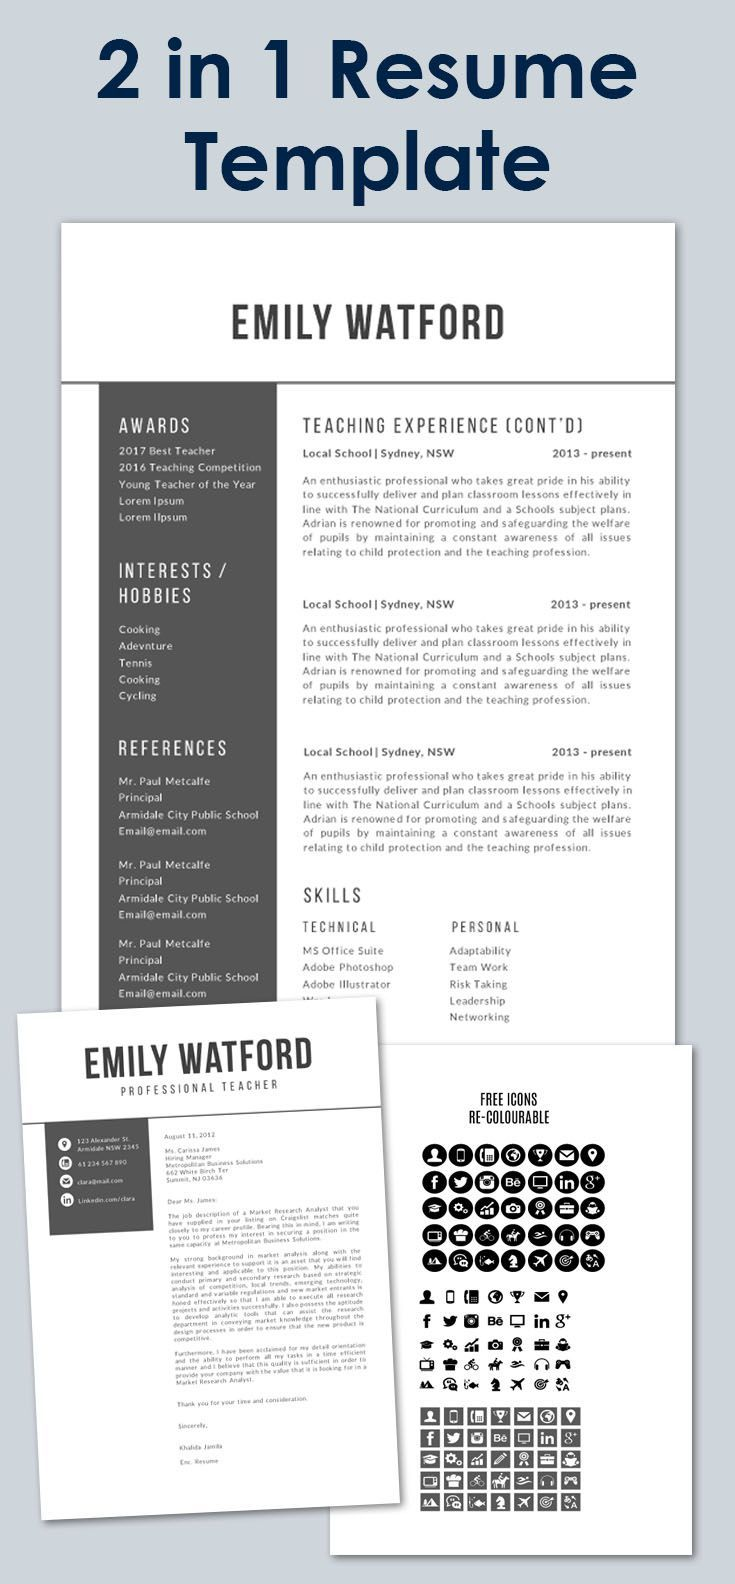 Editable resume cover letter and reference all parts